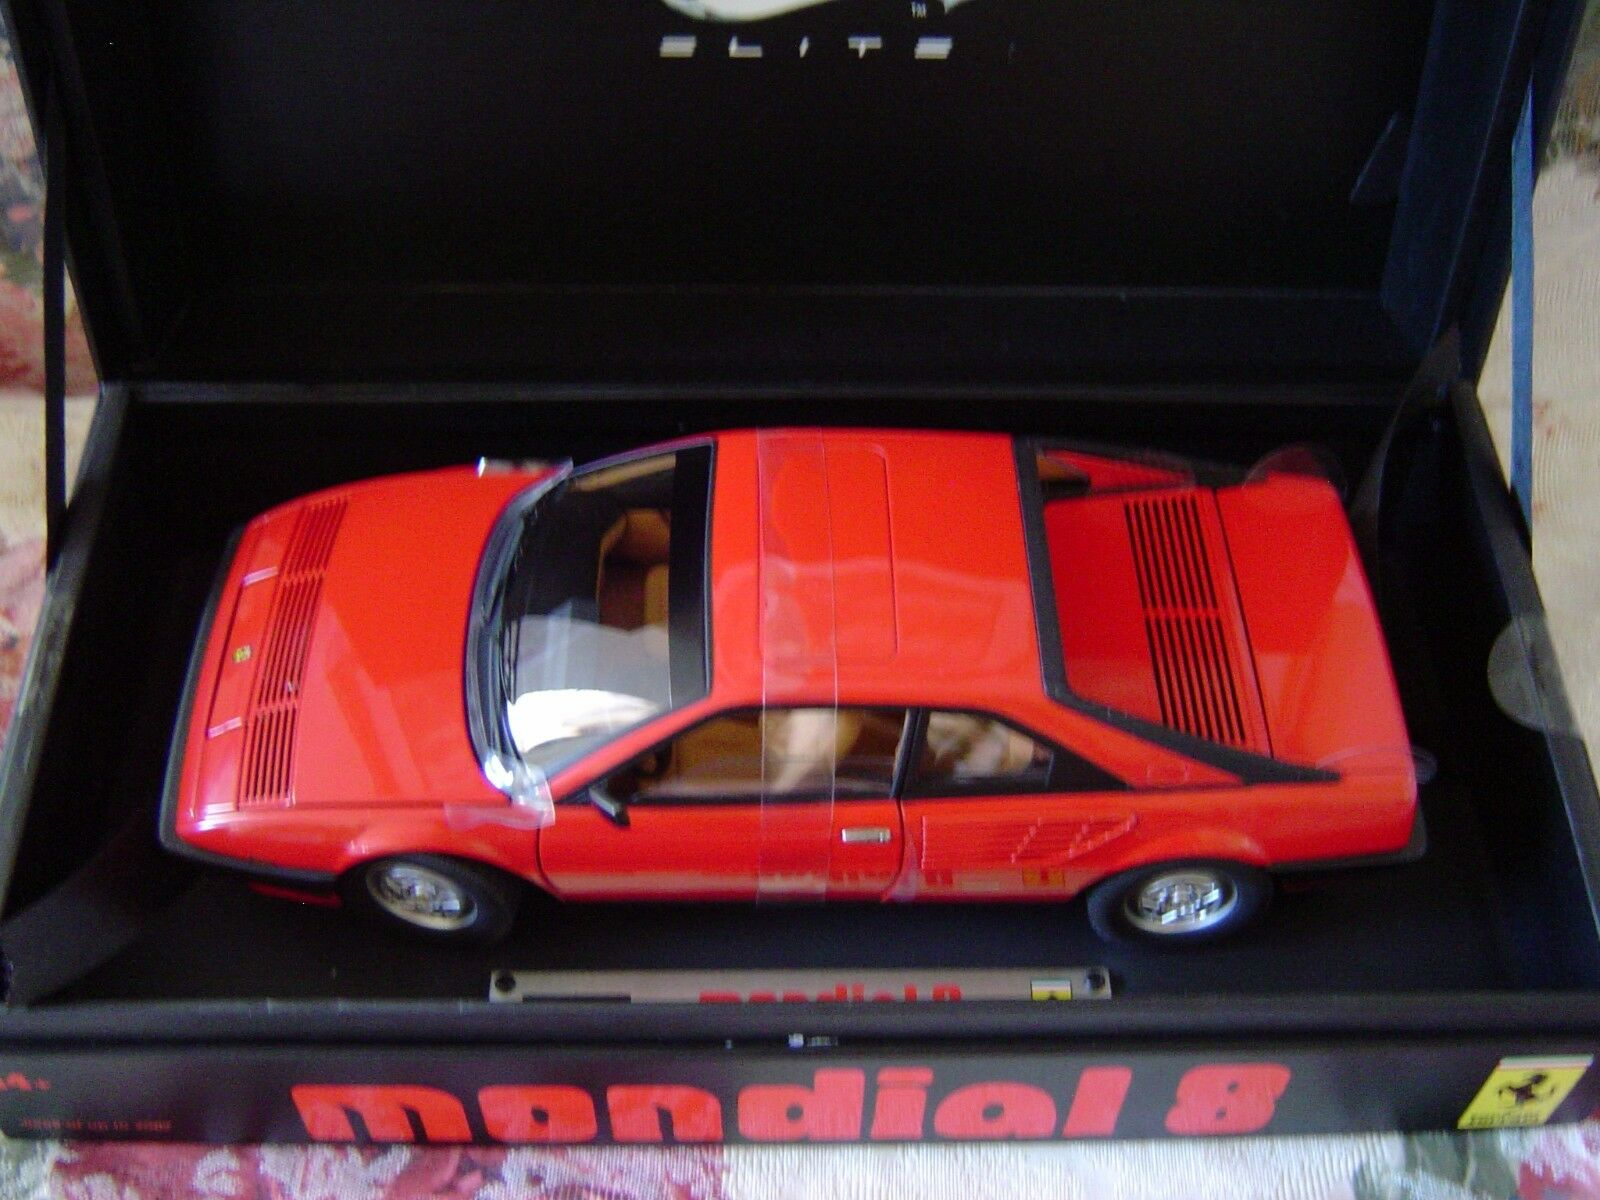 Hot wheels ferrari mondial super - elite 18 & collector 's auto - fall